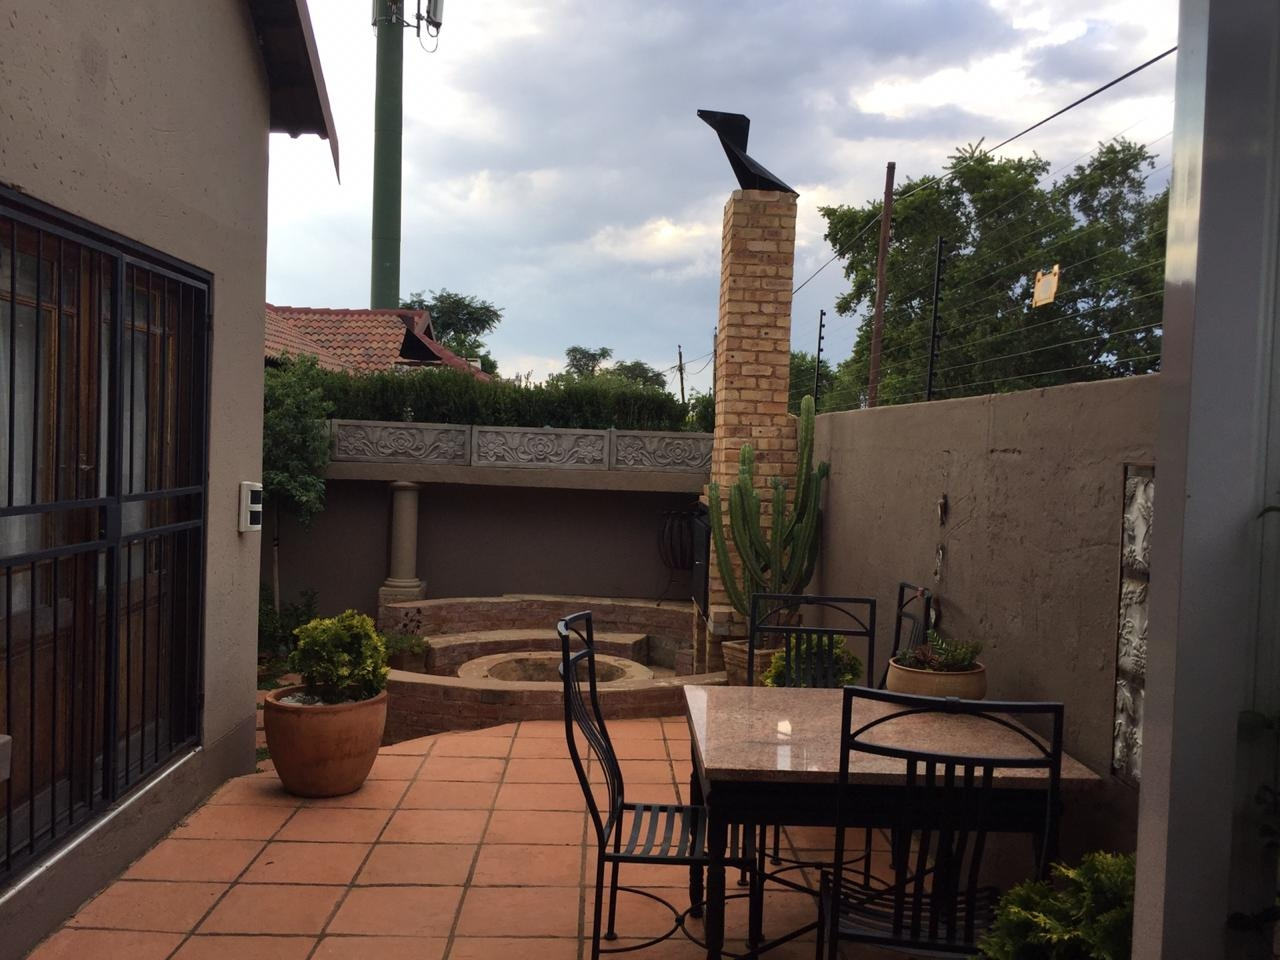 View from patio towards fire pit and braai area